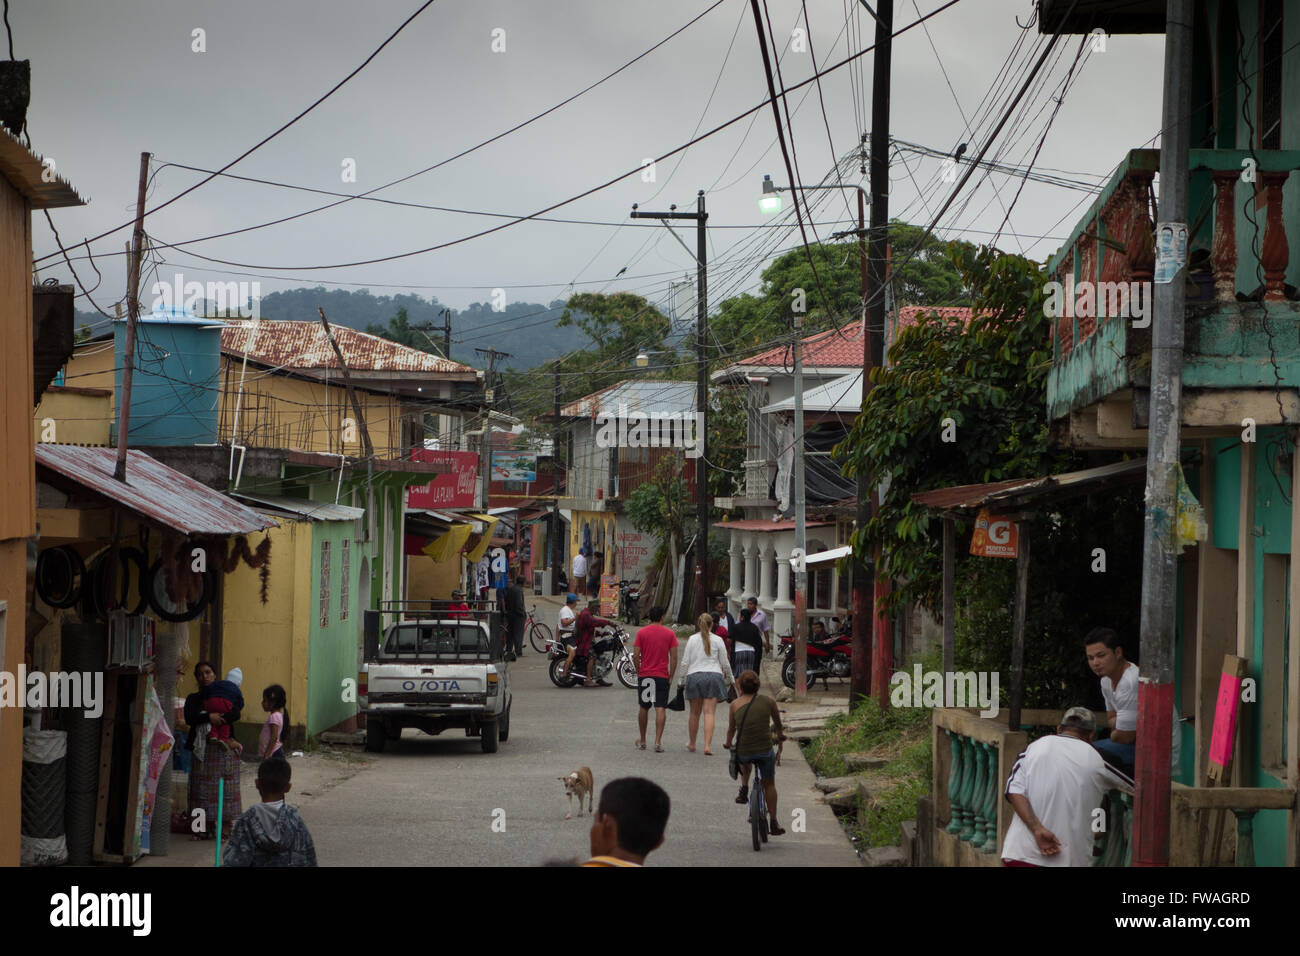 Livingston street view, Guatemala - Stock Image